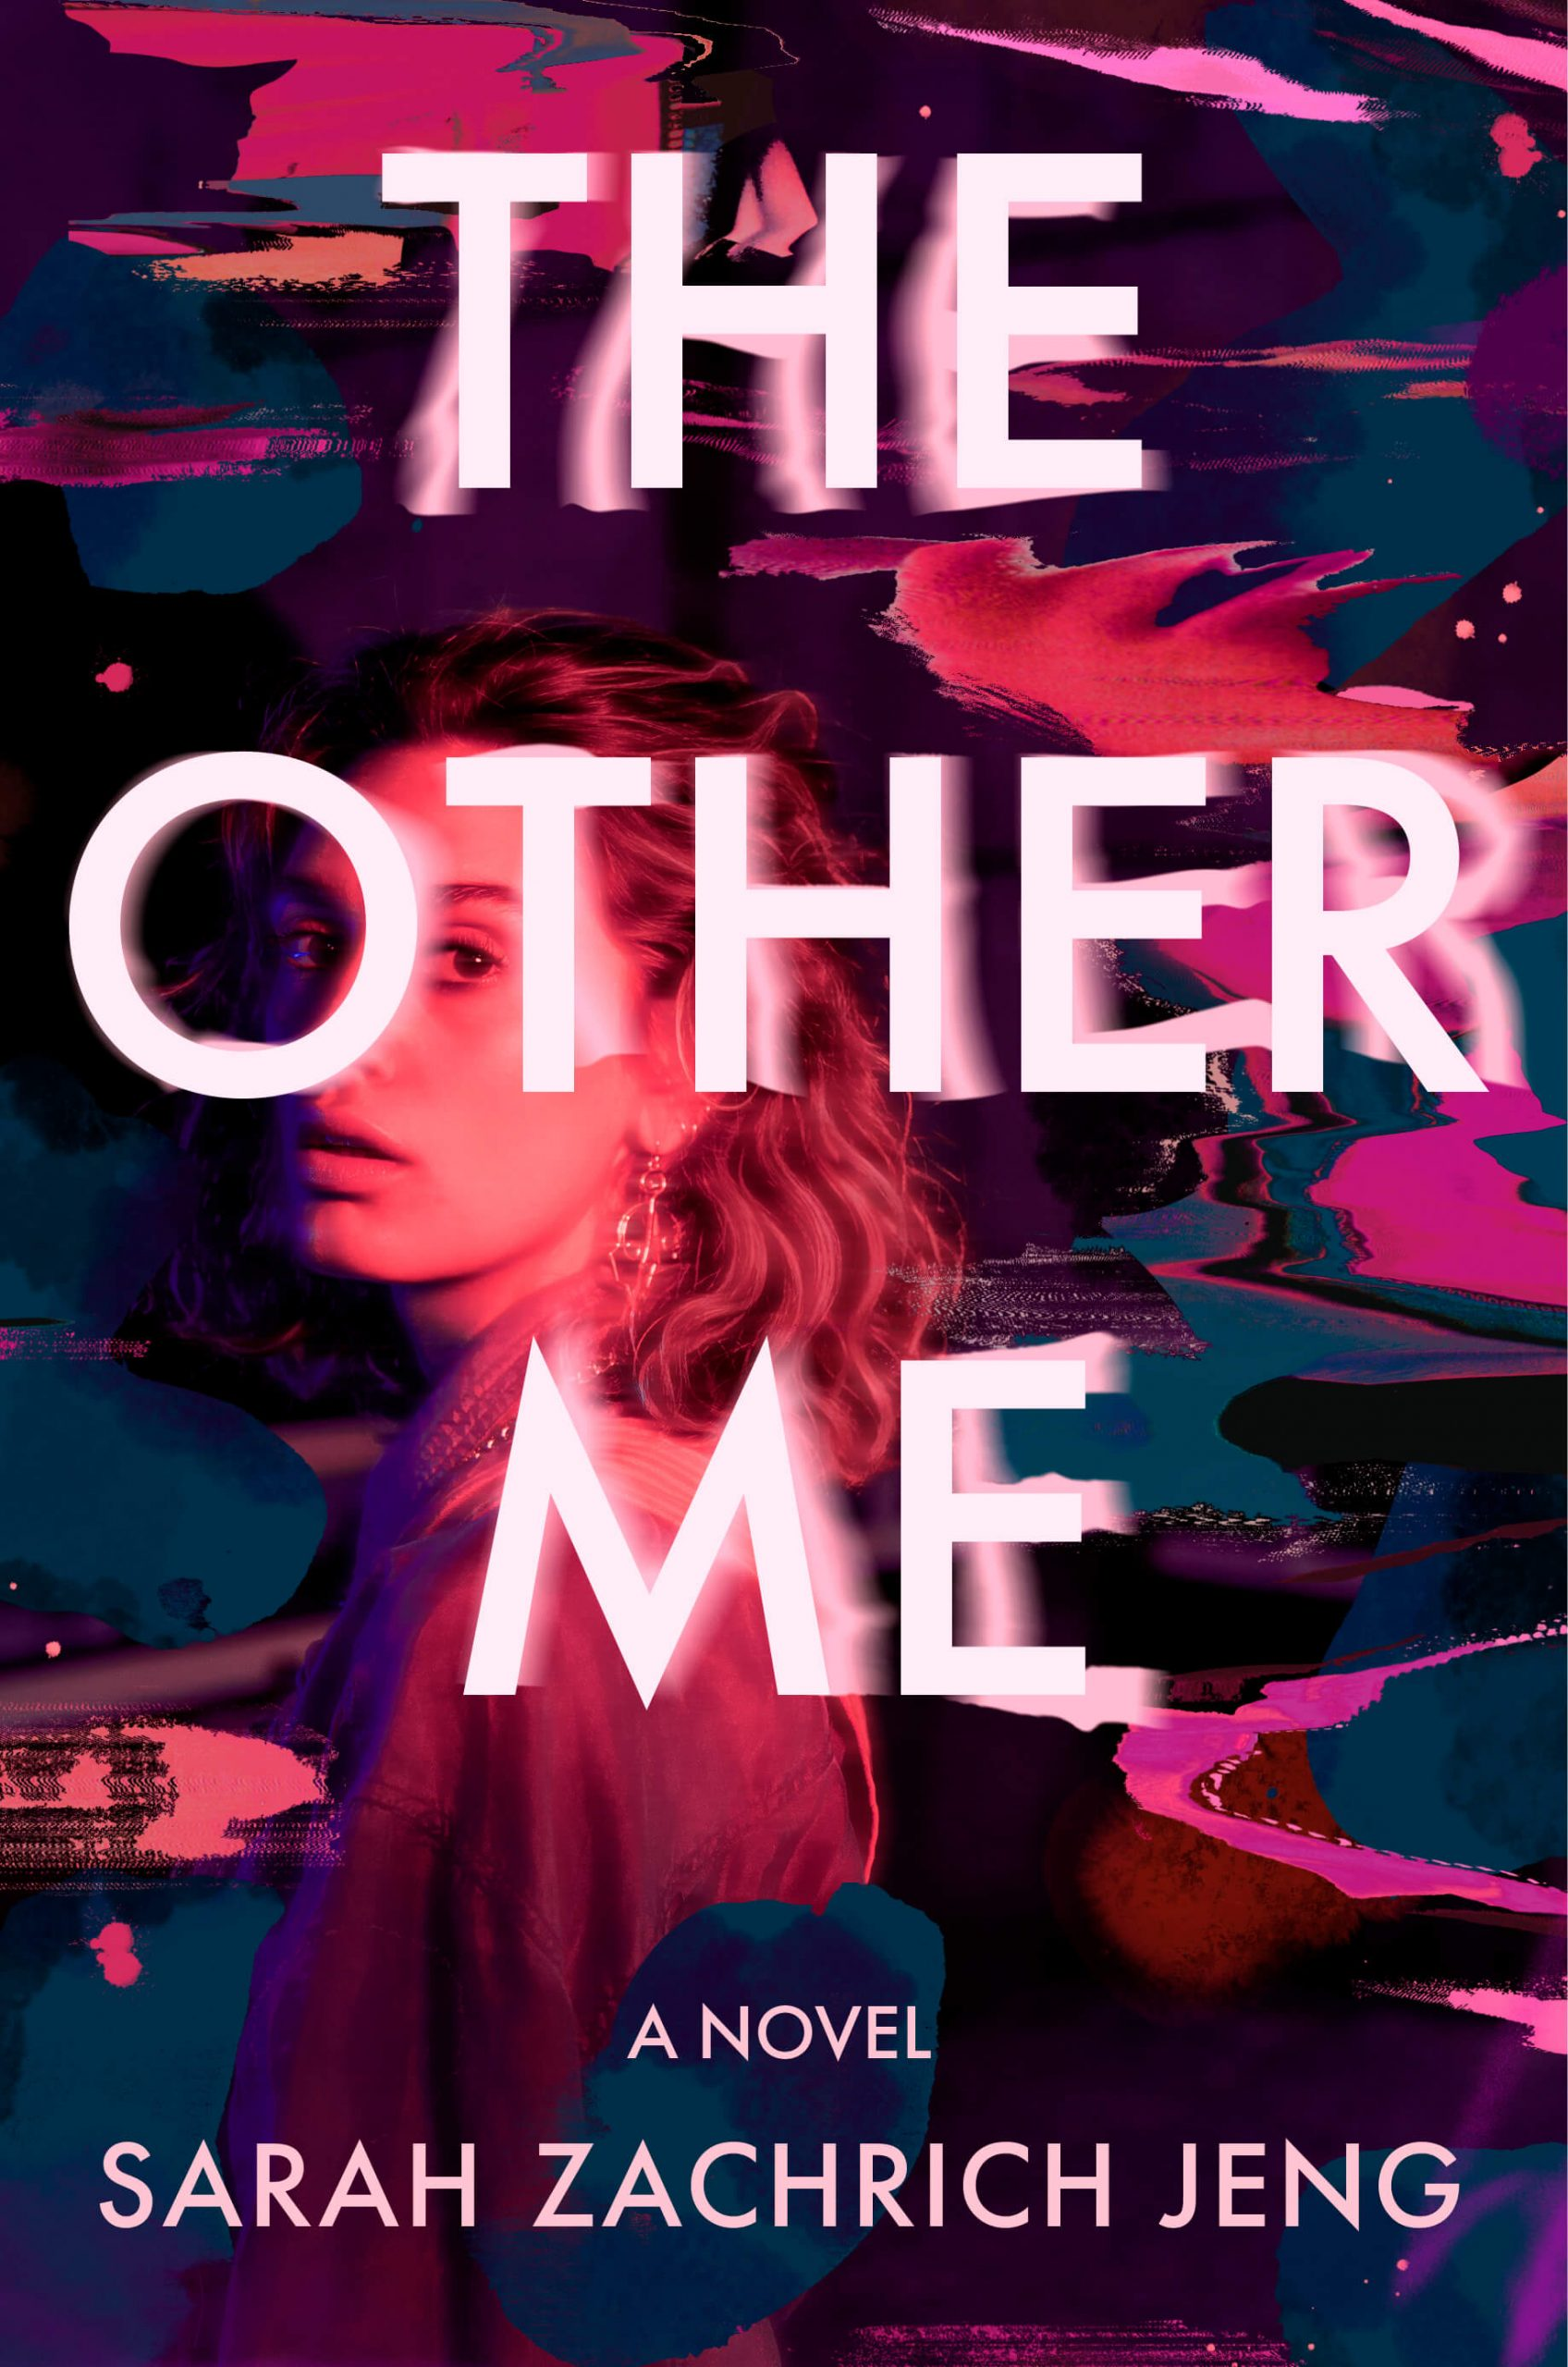 When Does The Other Me By Sarah Zachrich Jeng Come Out? 2021 Debut Releases